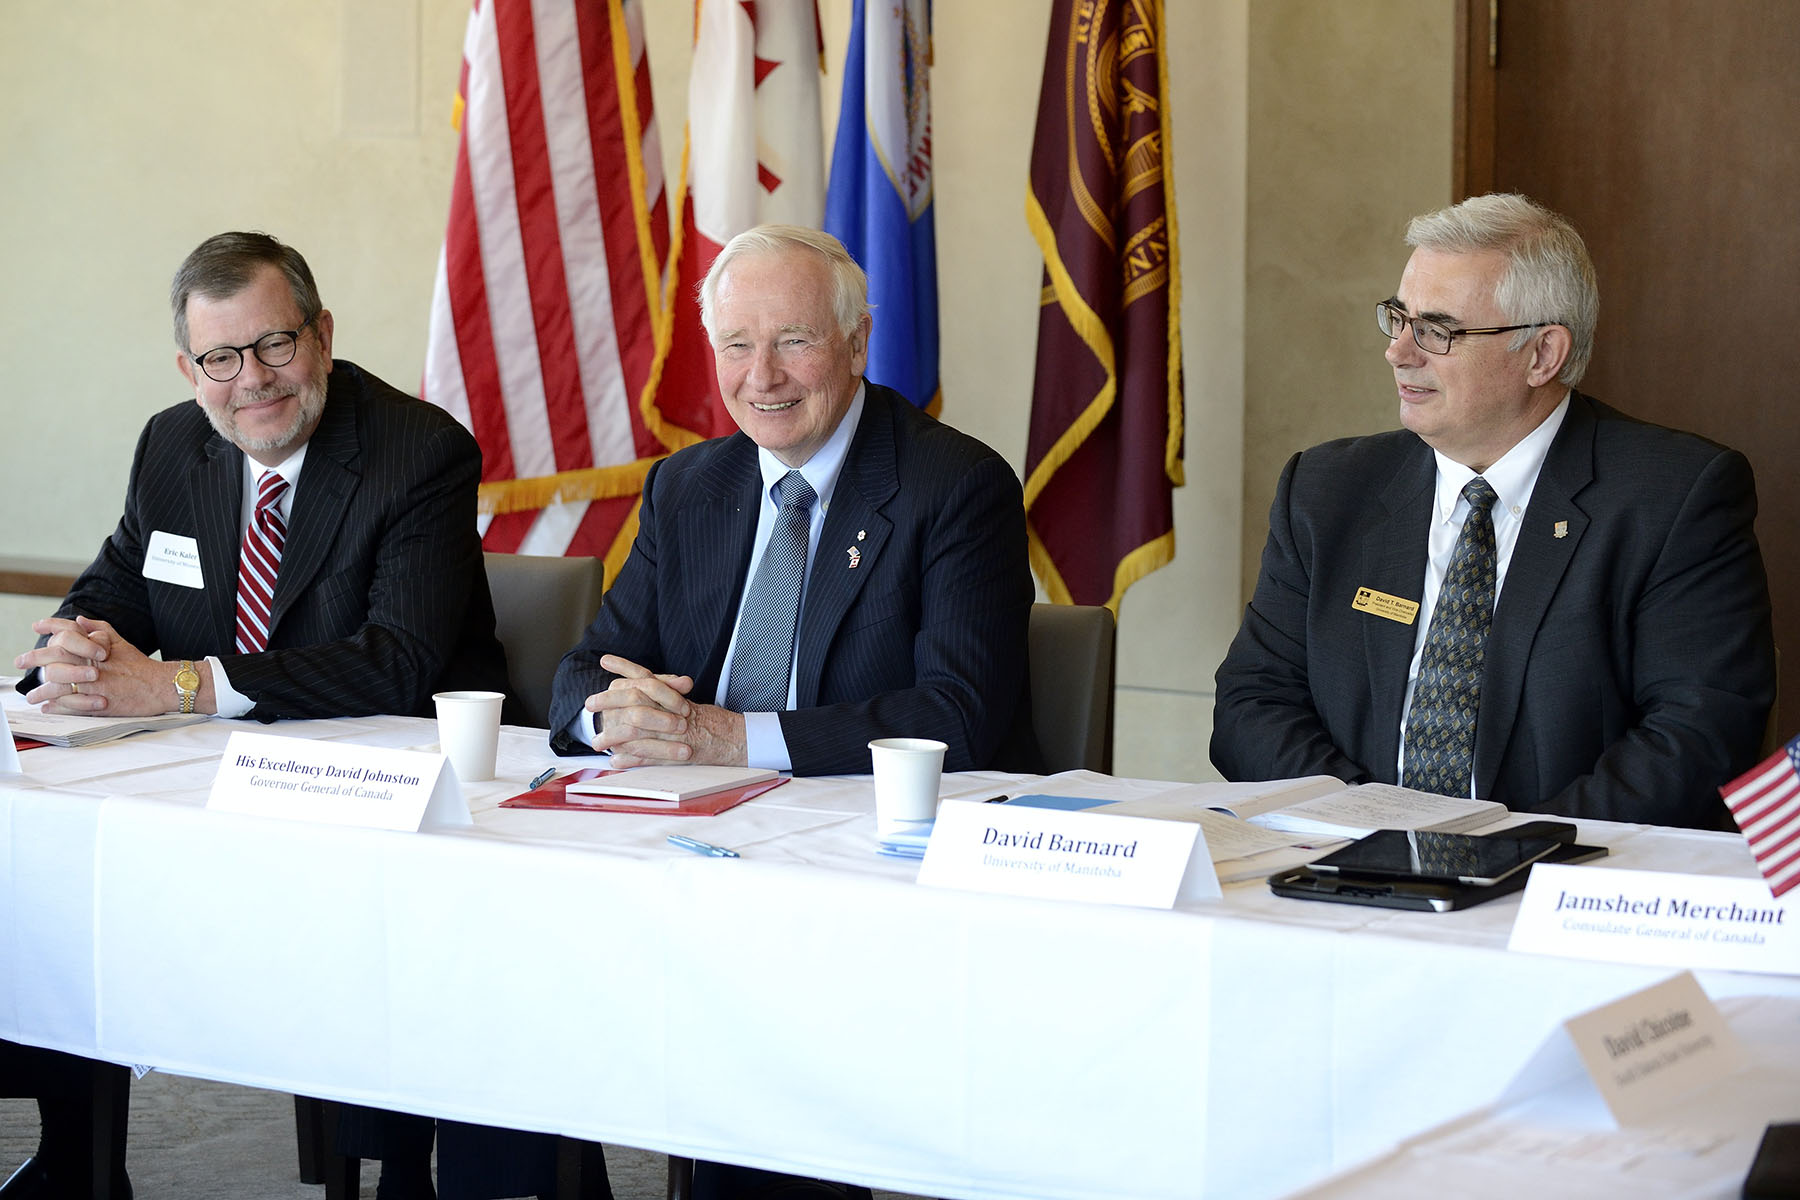 The Governor General then took part in a discussion with representatives of public and private universities in Minnesota, Iowa, North Dakota and South Dakota.